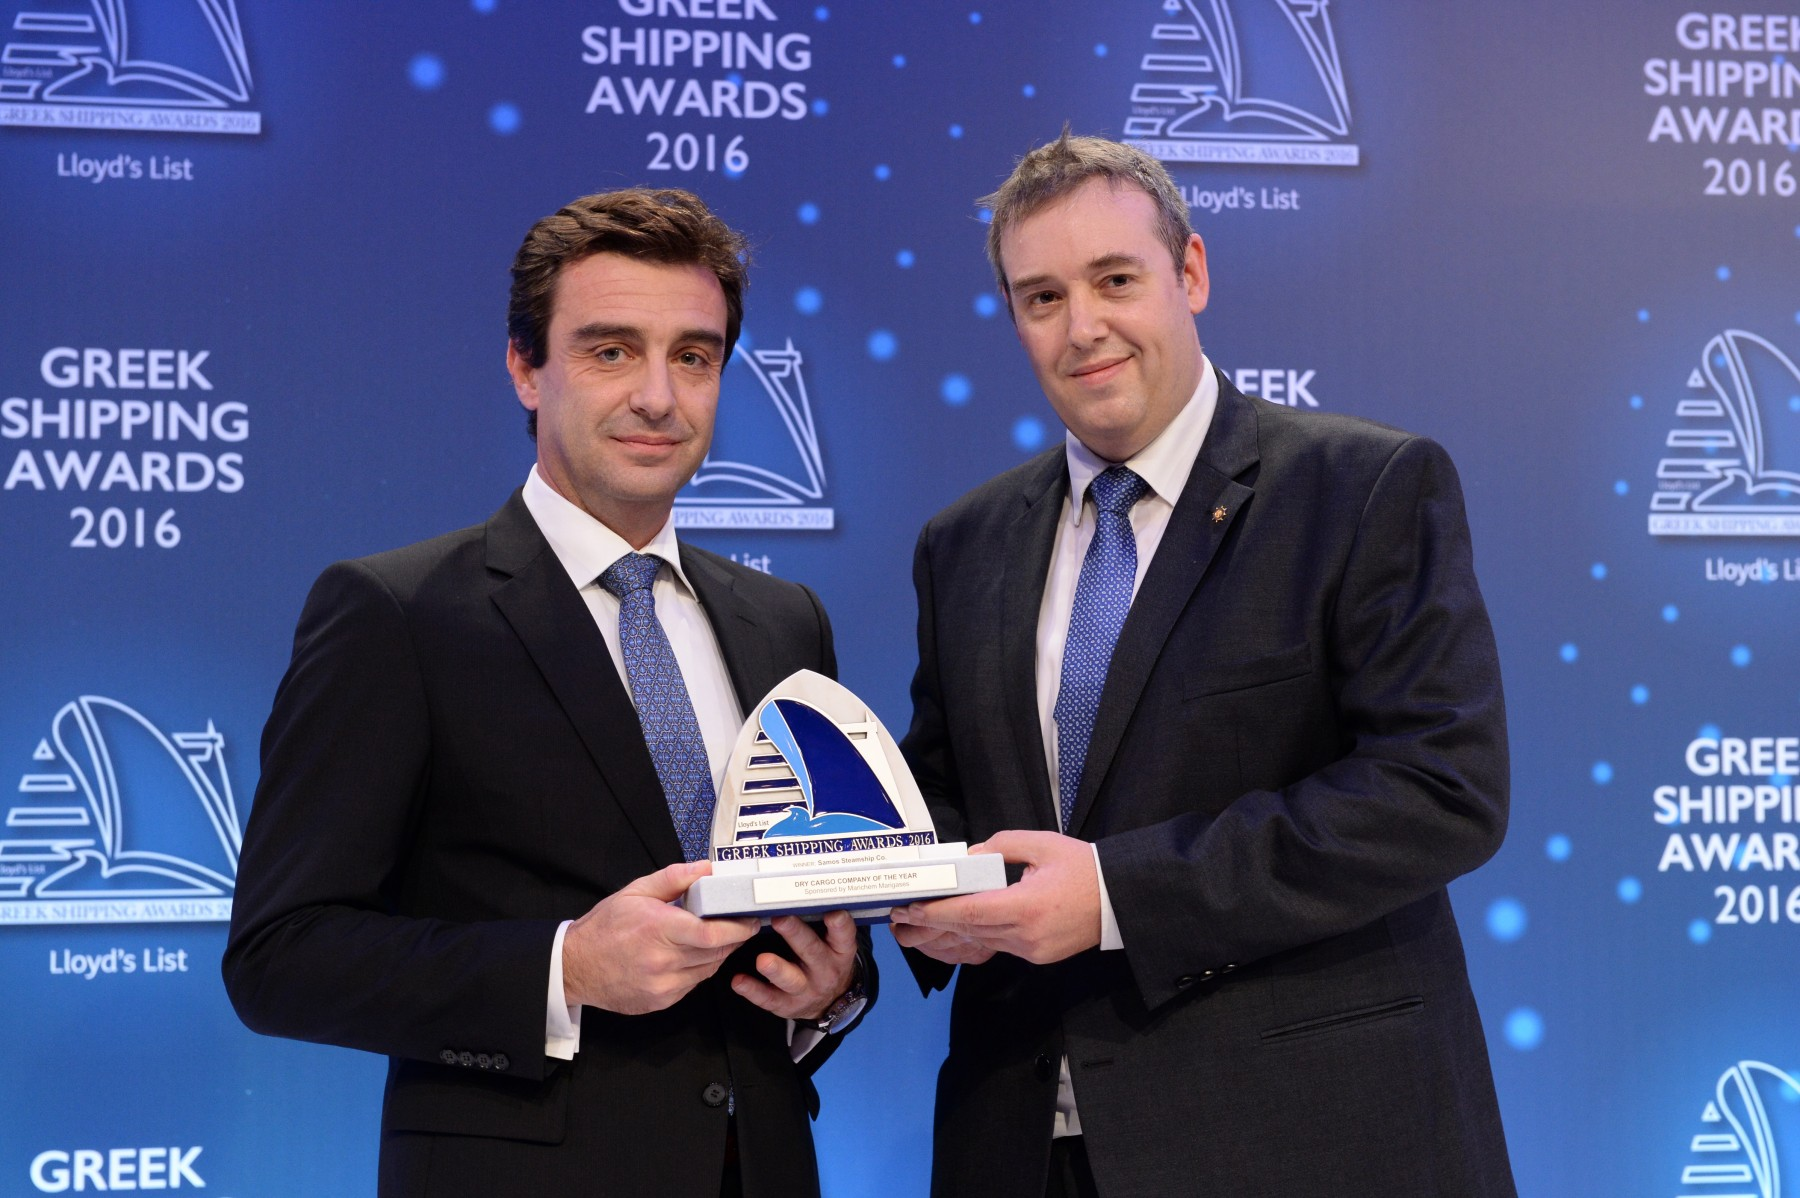 Mr. Anastasios Tzamouranis of Samos Steamship Co. accepting the Dry Cargo Company of the Year Award from Matthew More of sponsor Marichem Marigases.